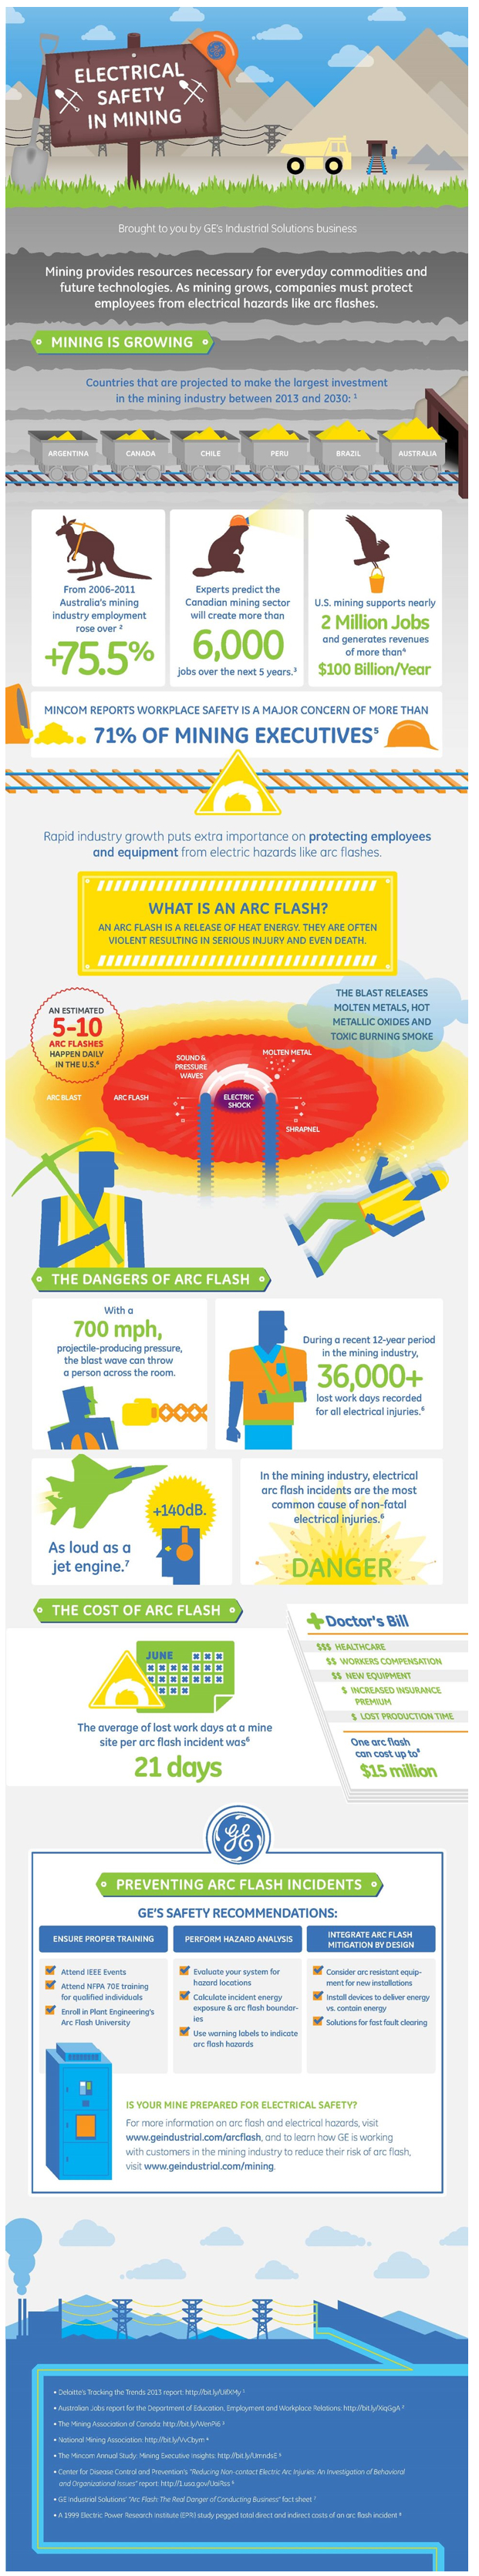 INFOGRAPHIC-Electrical-Safety-in-Mining